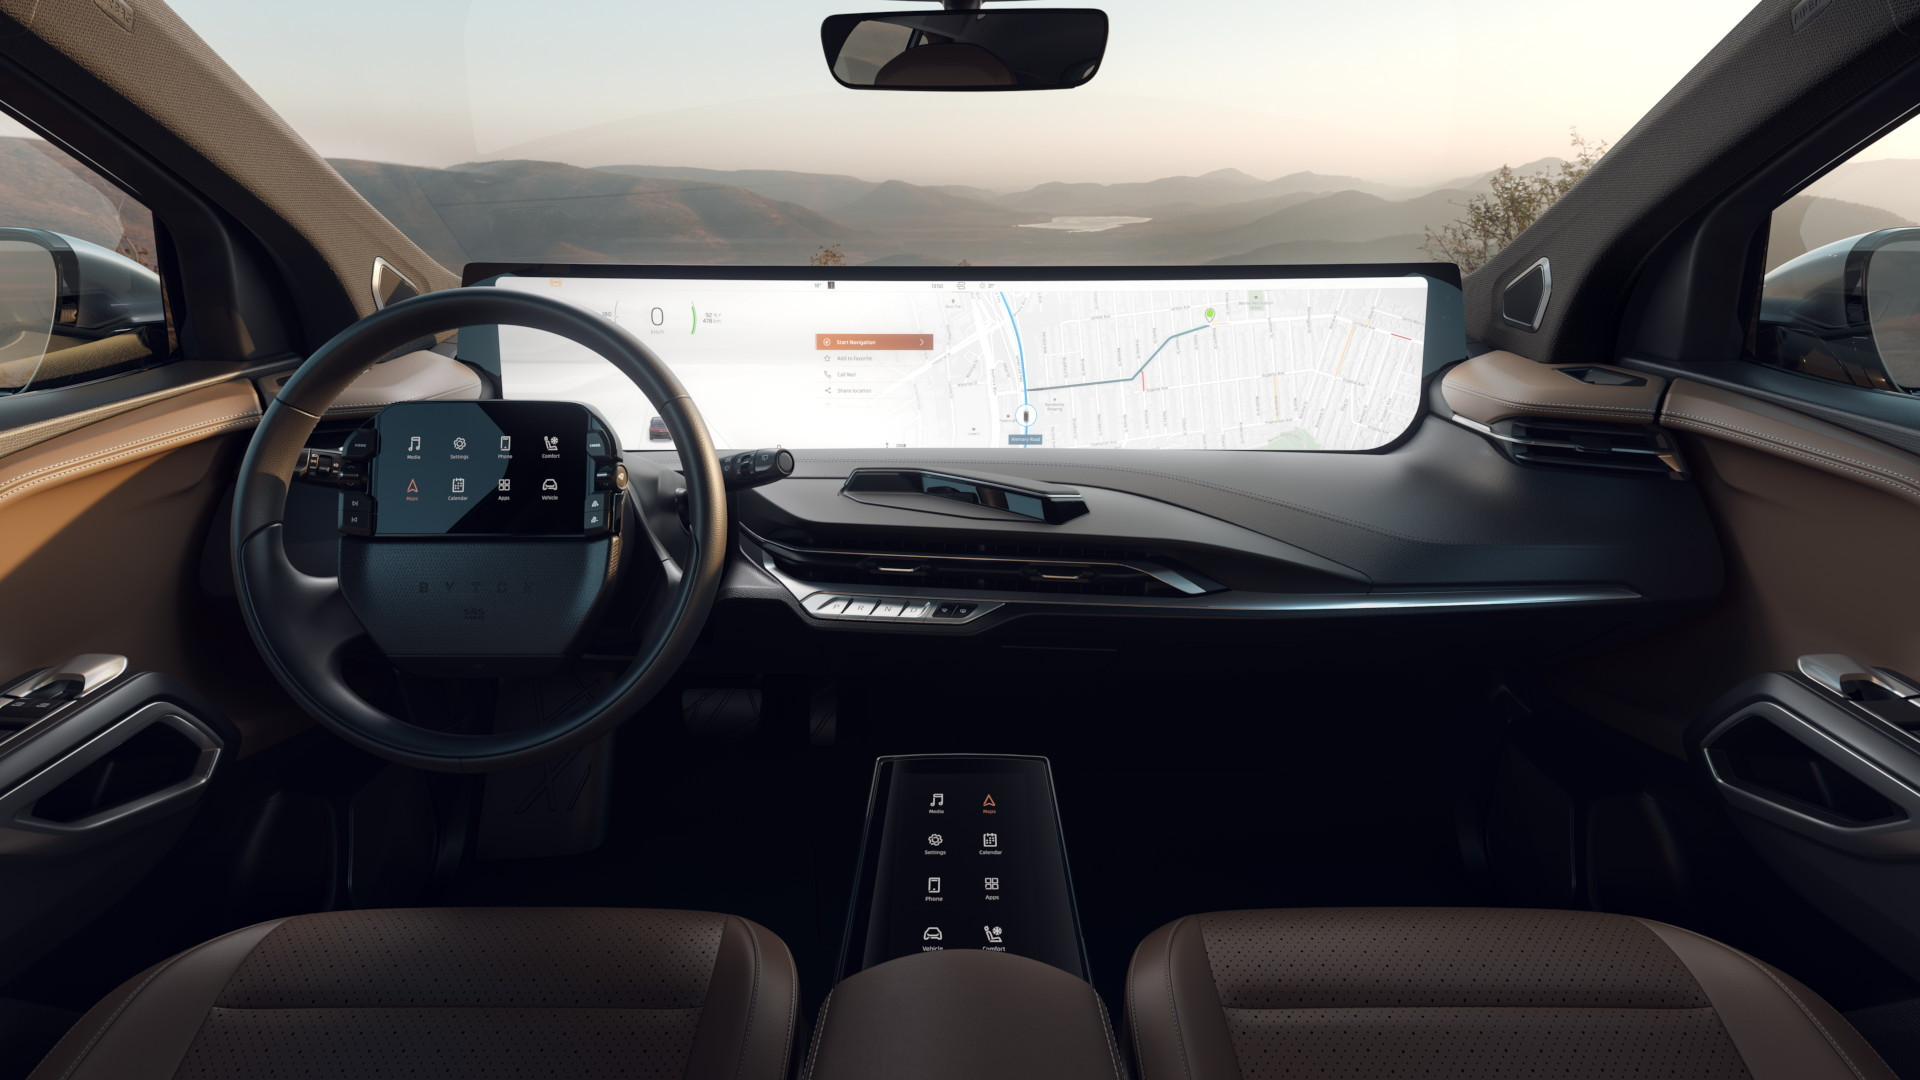 Byton M-Byte interior  -  production prototype for CES 2019